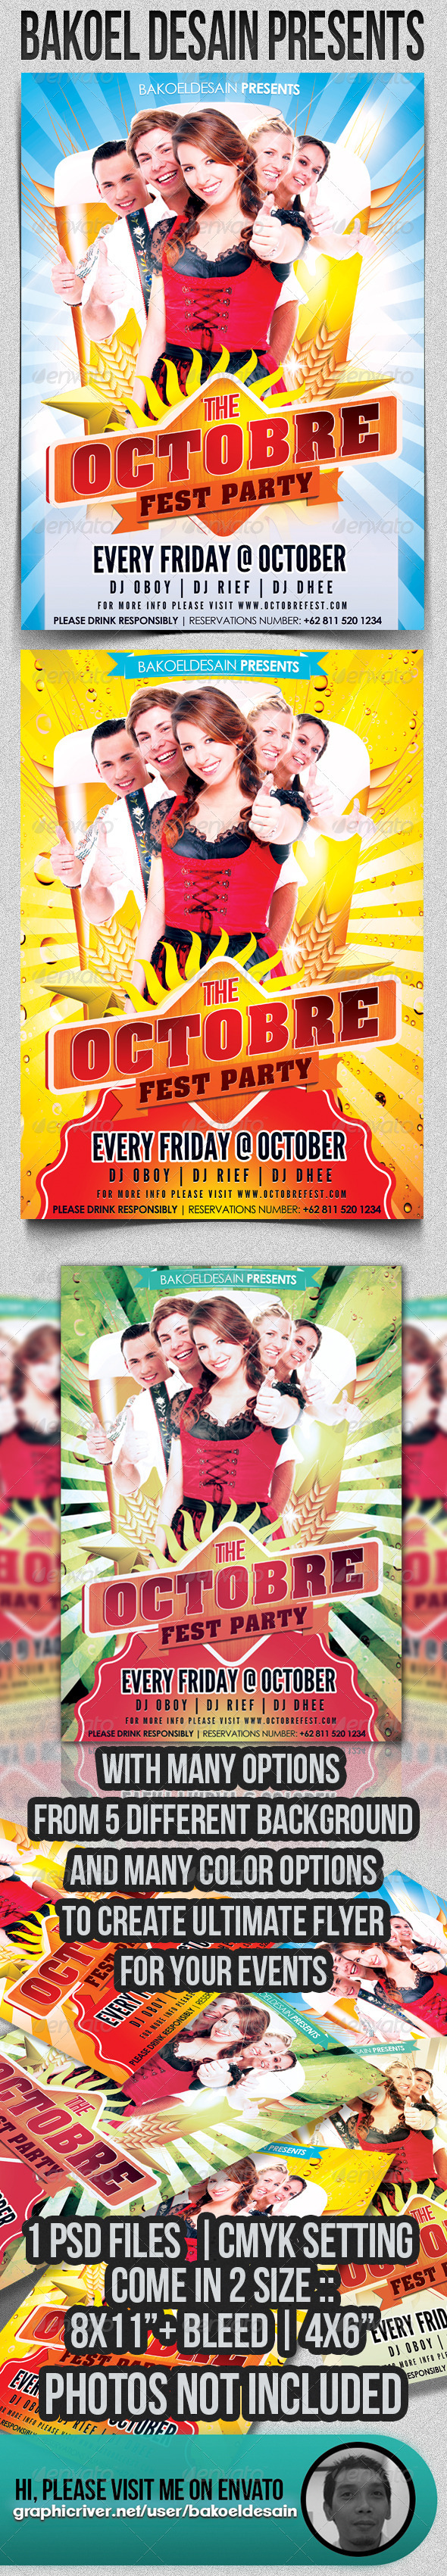 Octobre Fest Party Flyer - Clubs & Parties Events